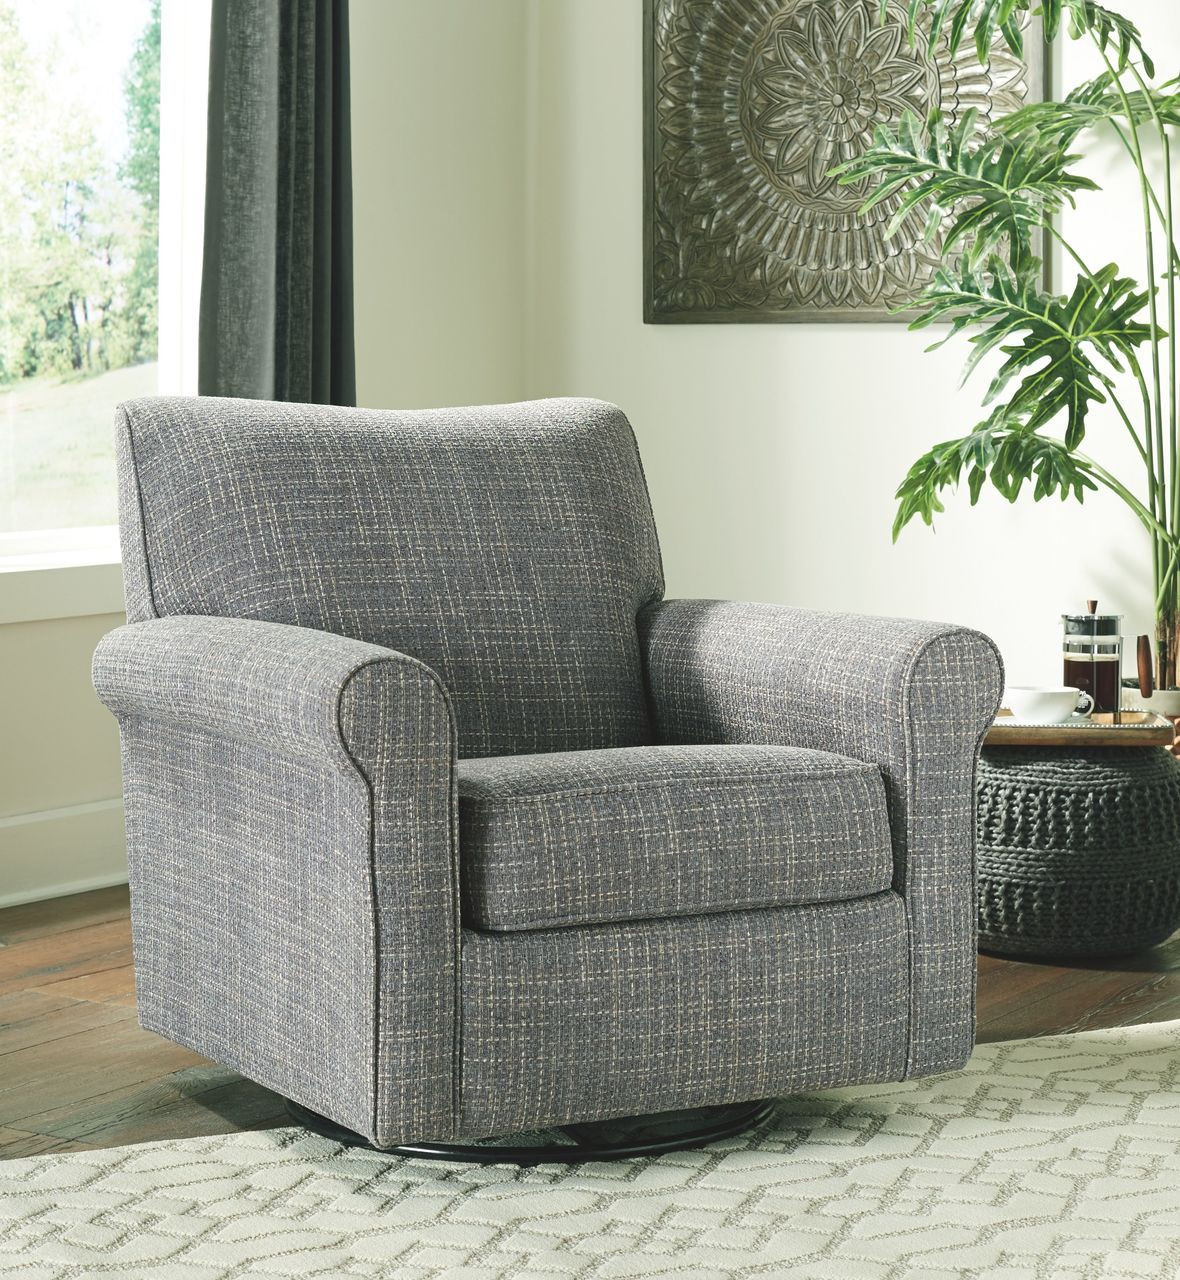 Rent A Center Accent Chairs.Renley Ash Swivel Glider Accent Chair